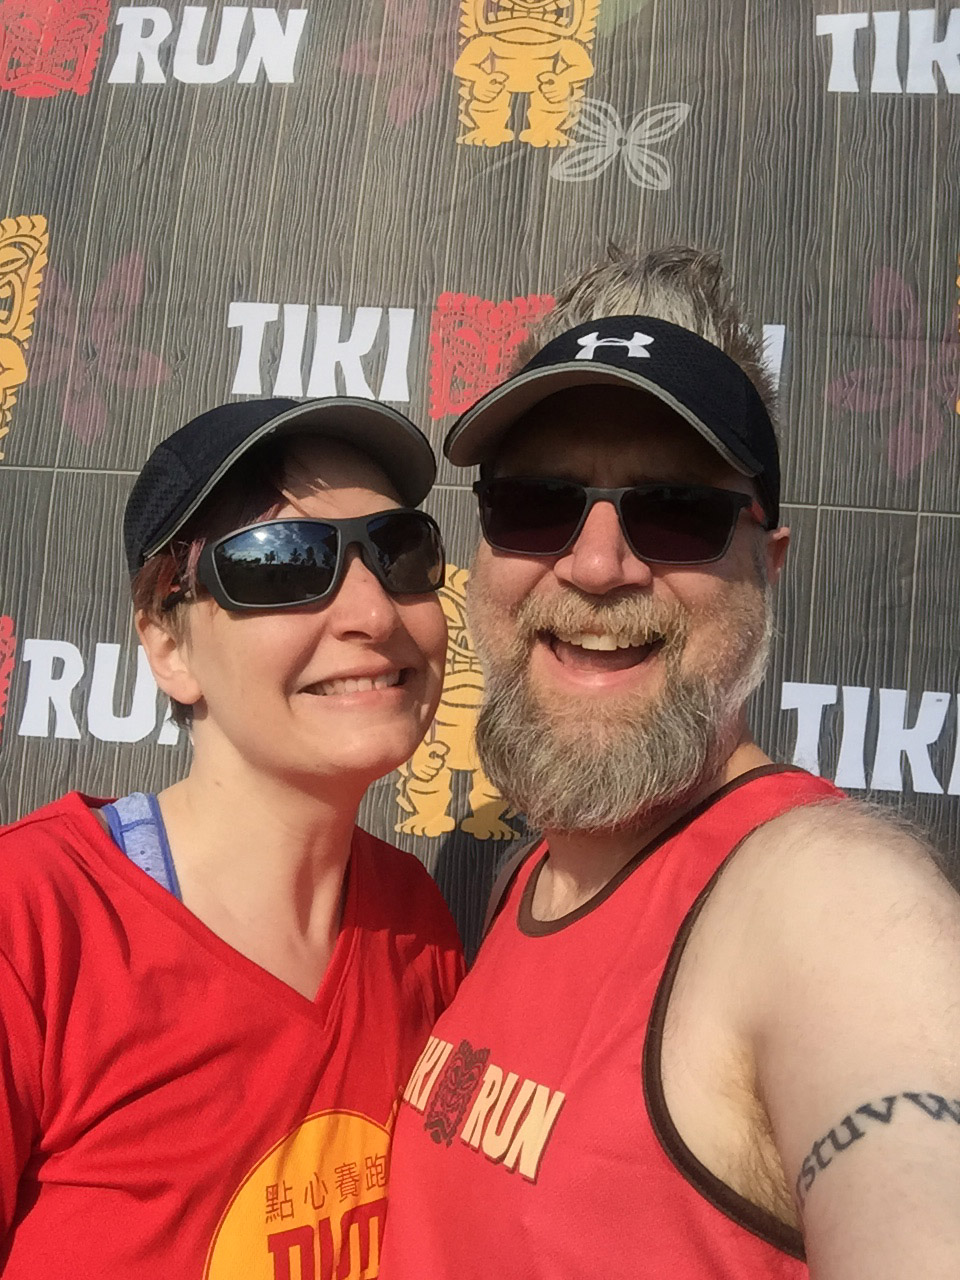 Erica and Fuzzy at the Tiki Run